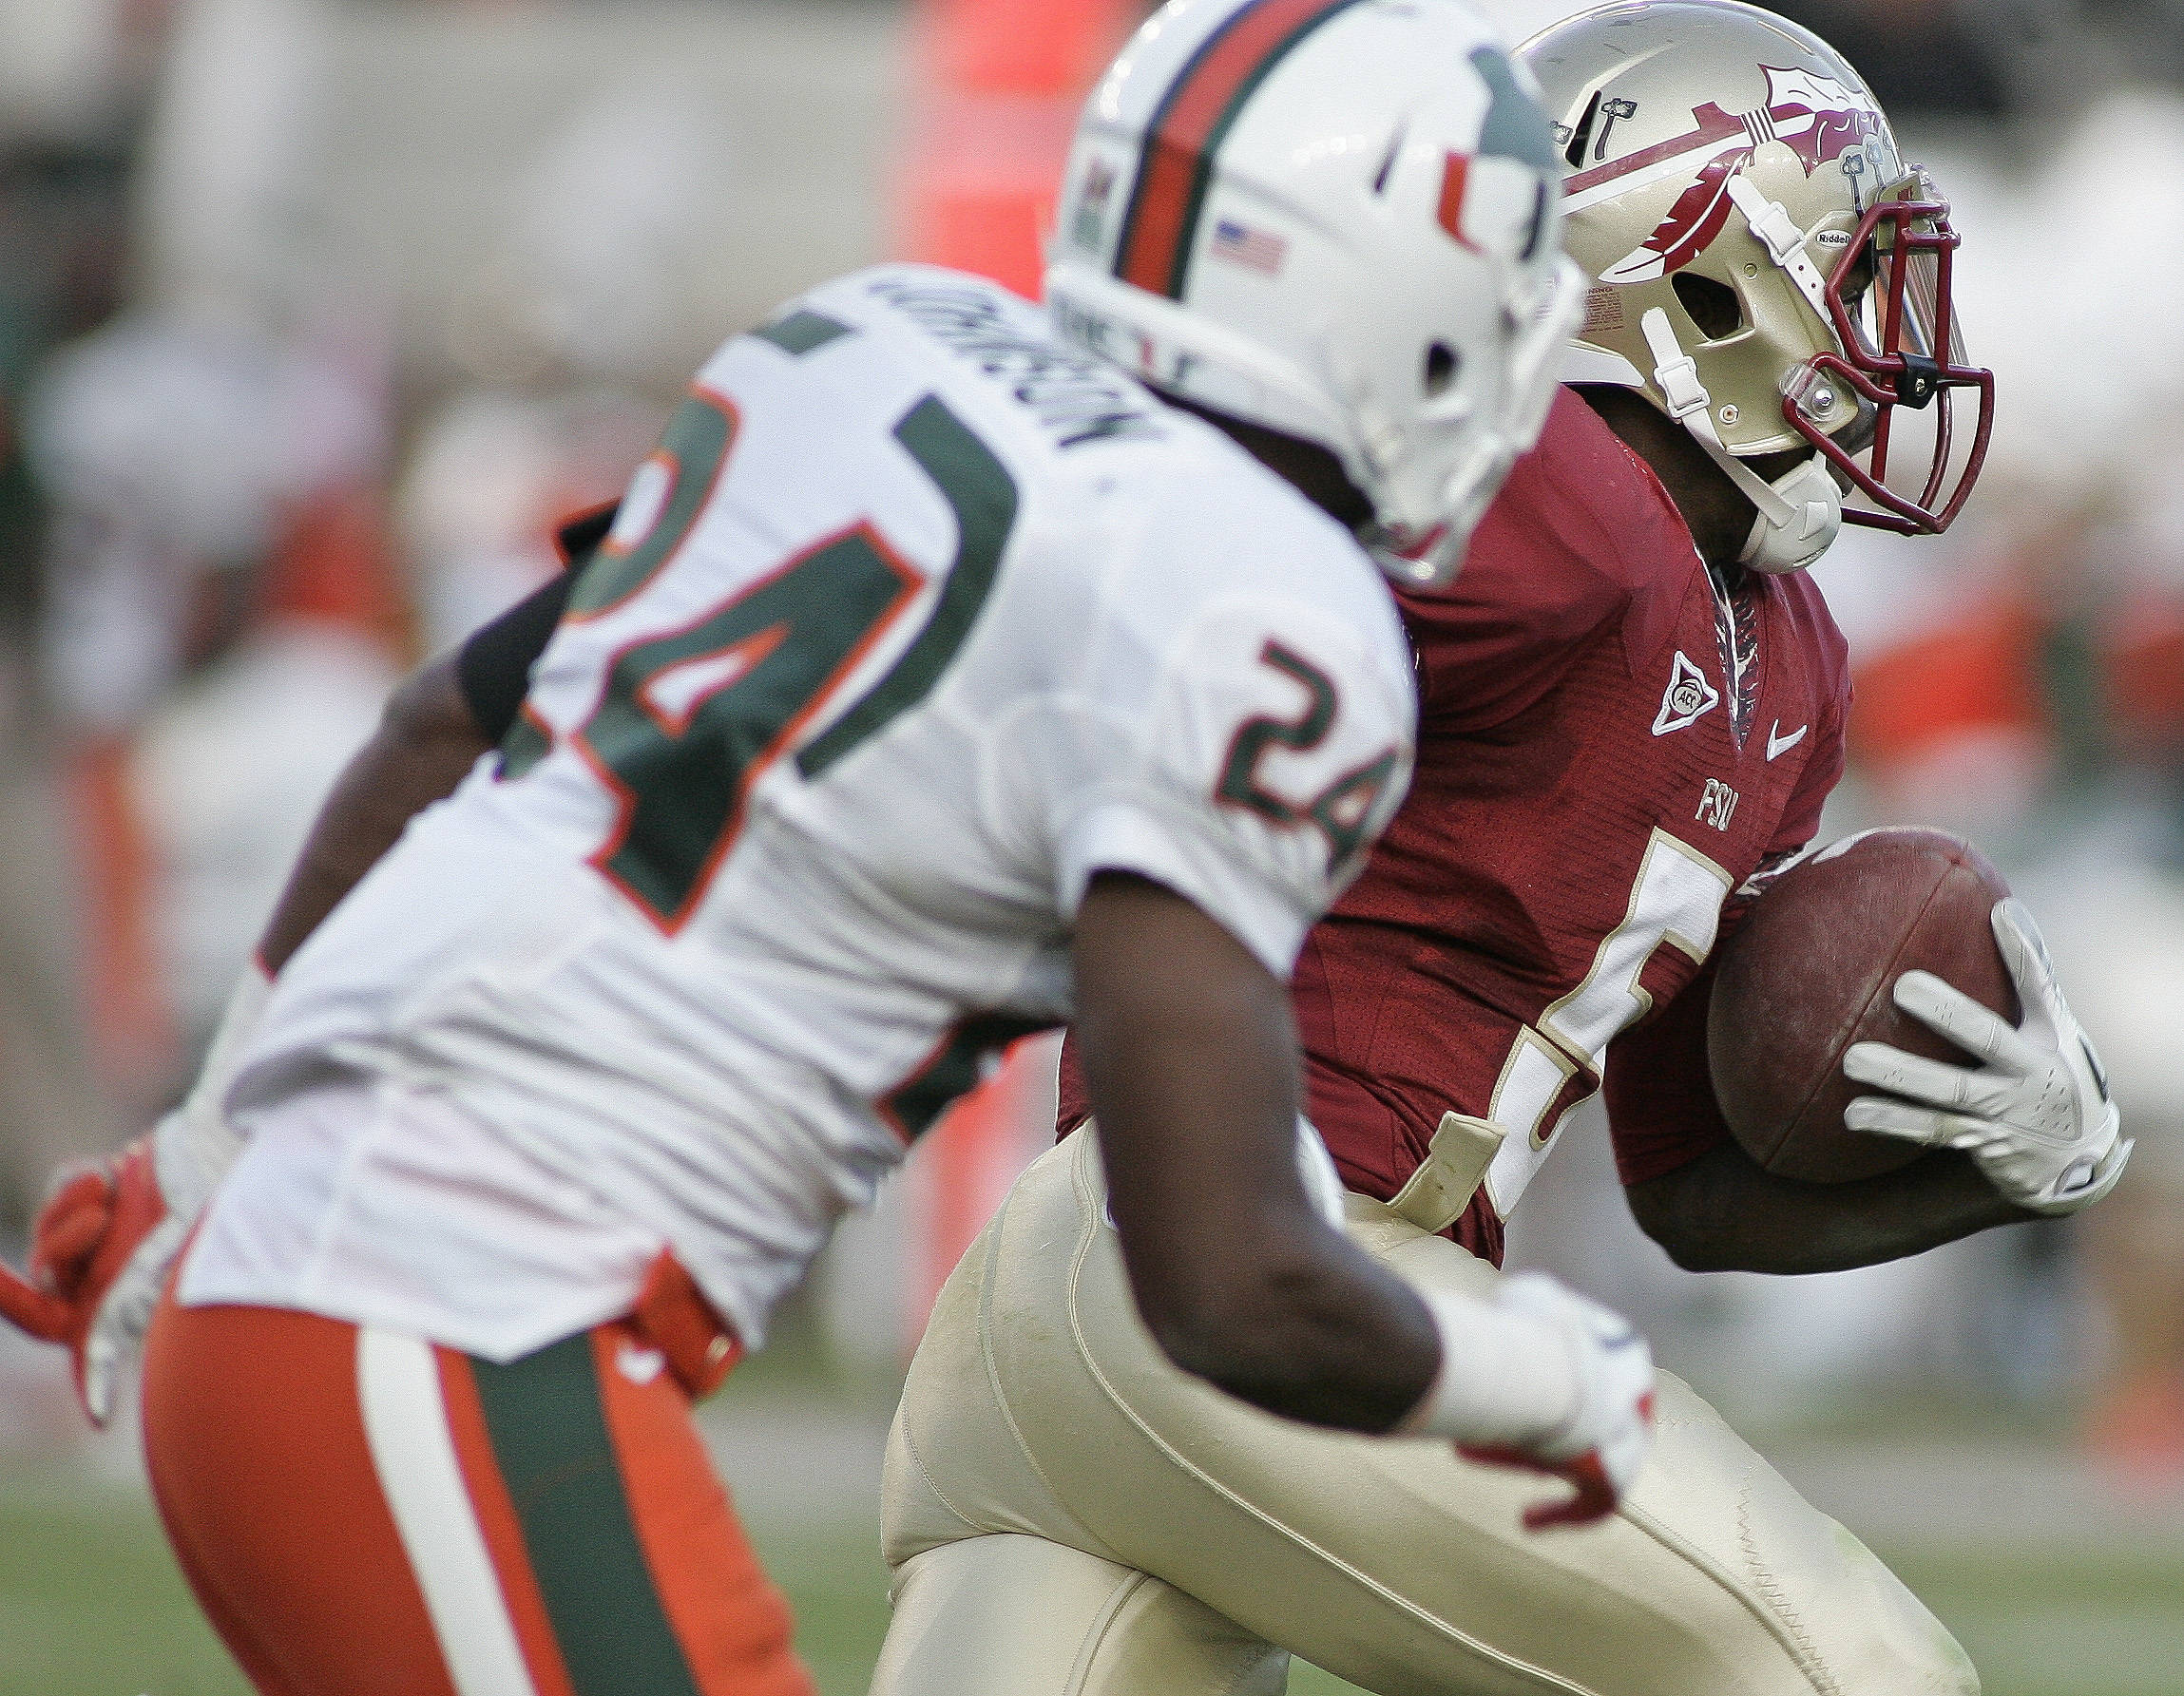 Florida State cornerback Greg Reid, right rear, takes off past Miami defensive back Davon Johnson (24) on an 83-yard punt return for a touchdown during the second quarter of an NCAA college football game on Saturday, Nov. 12, 2011, in Tallahassee, Fla. (AP Photo/Phil Sears)